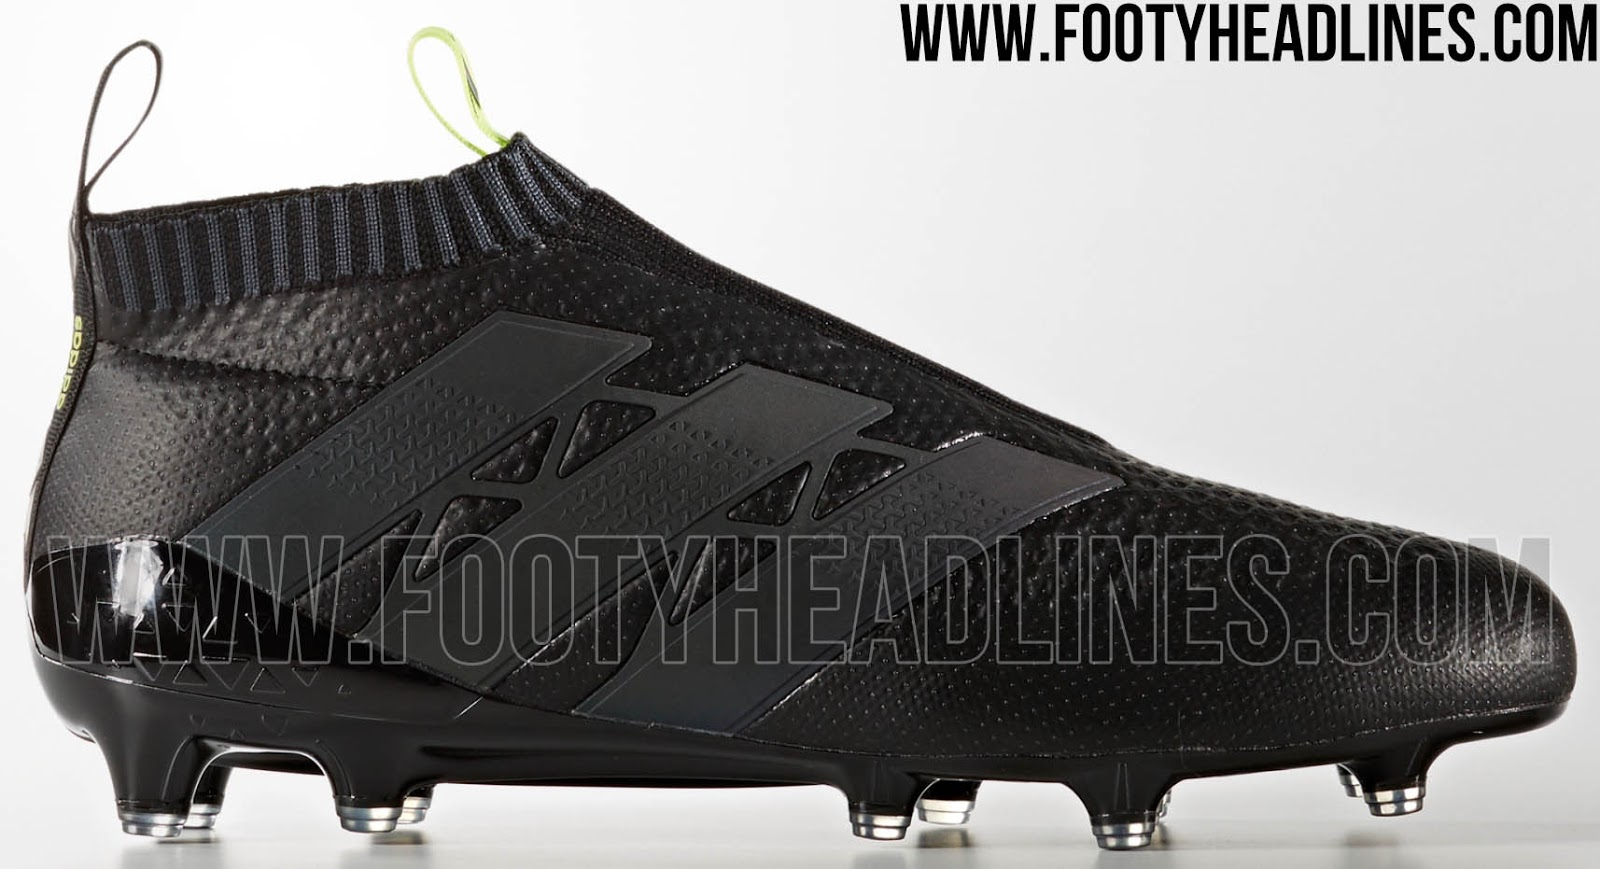 Adidas Ace 16 Purecontrol - Blackout